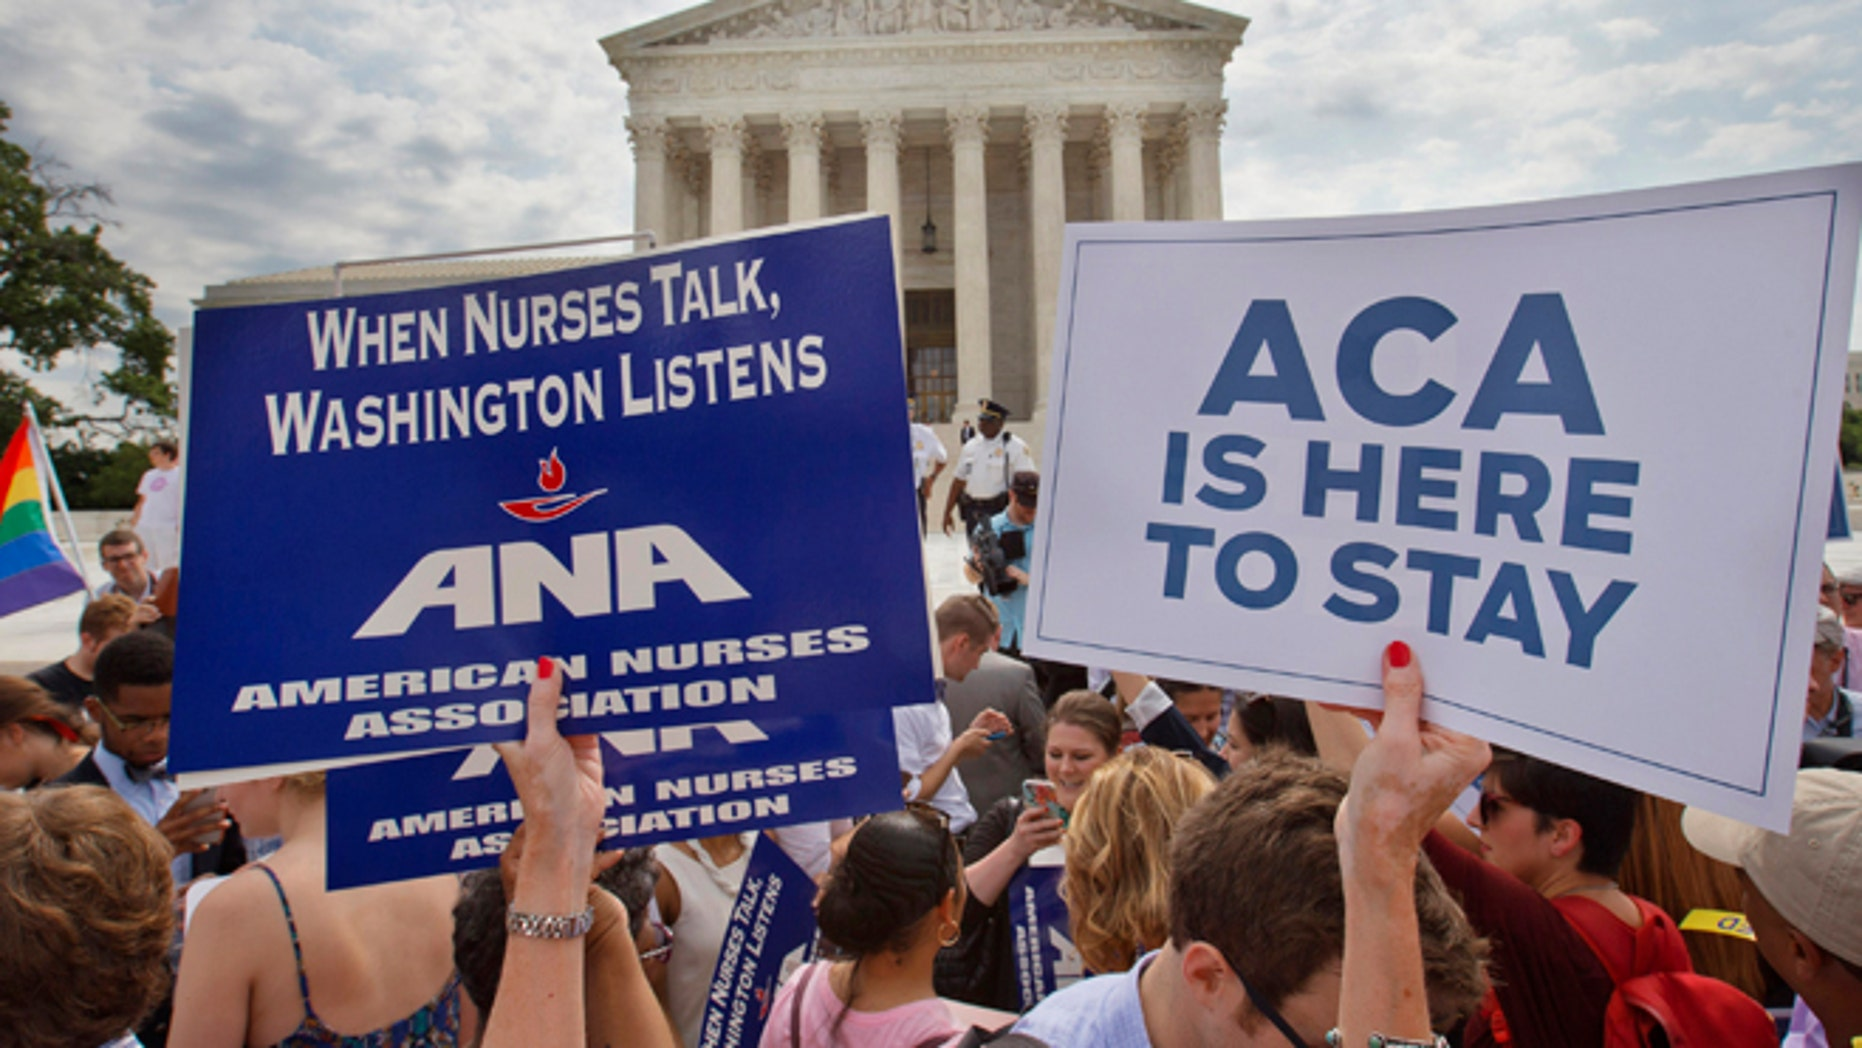 June 25, 2015: Supporters of the Affordable Care Act hold up signs as the opinion for health care is reported outside of the Supreme Court in Washington. (AP)